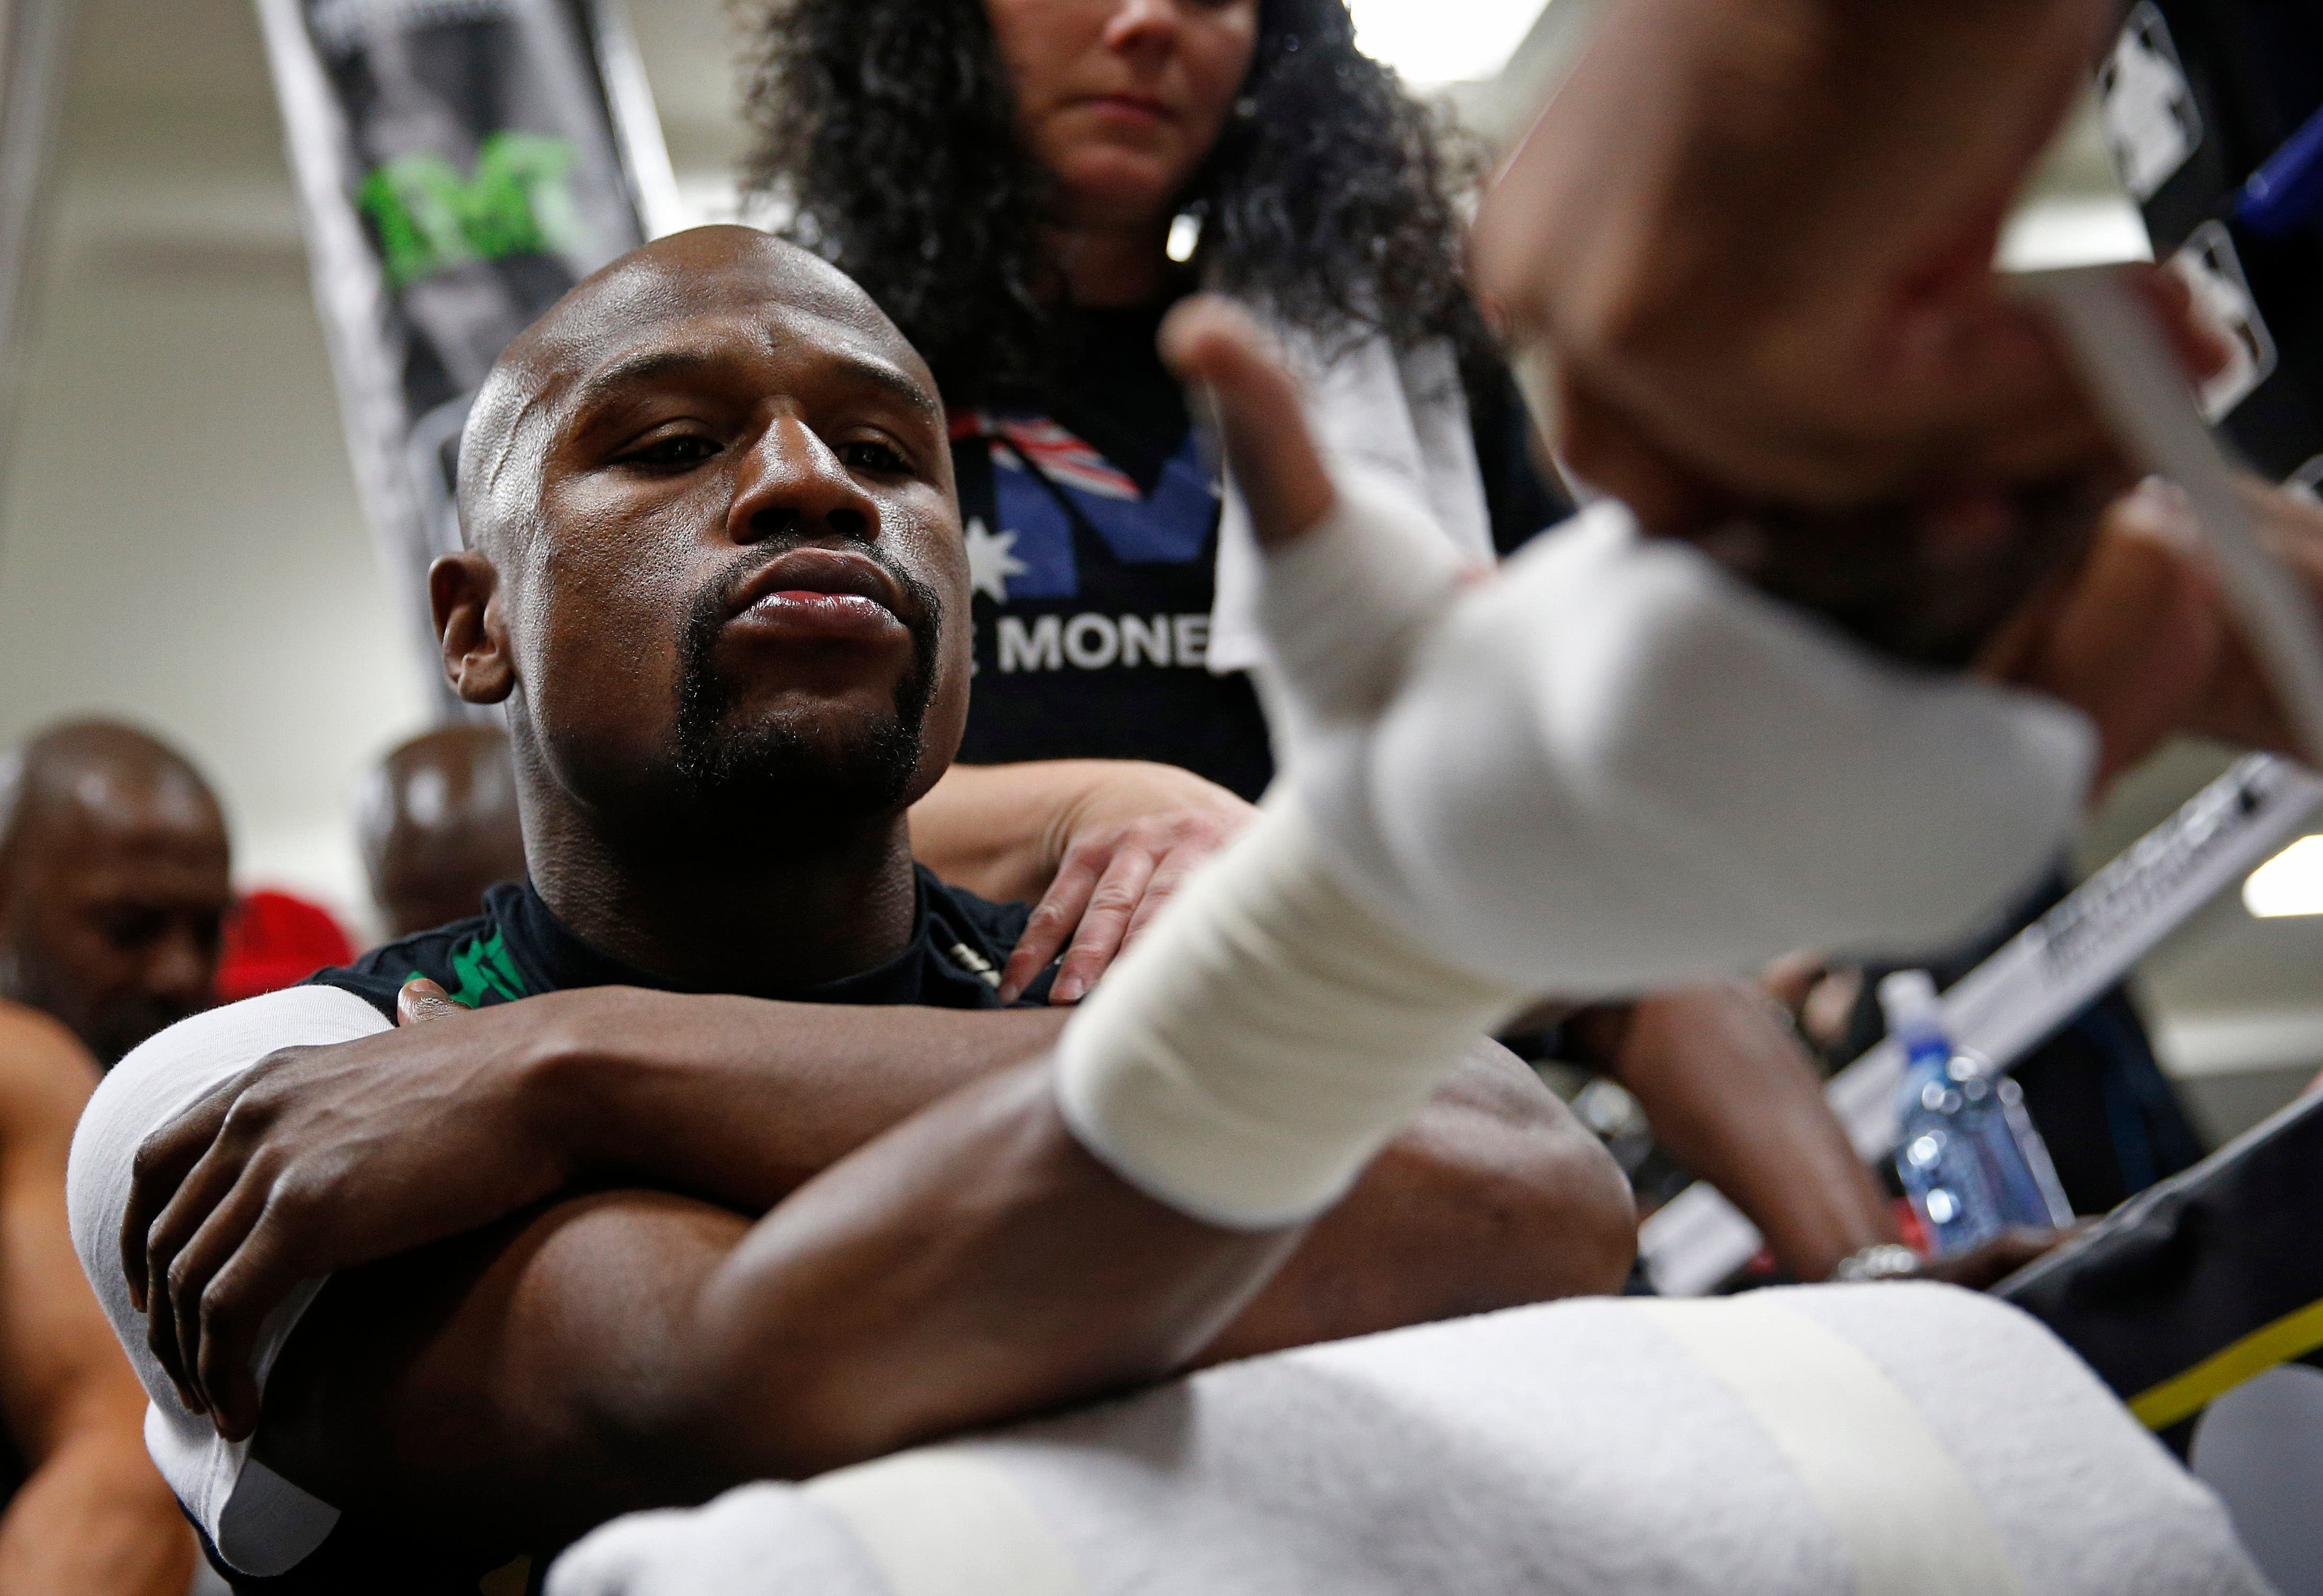 Boxer Floyd Mayweather Jr., left, works out with his uncle Roger Mayweather Tuesday, April 14, 2015, in Las Vegas. Mayweather will face Manny Pacquiao in a welterweight boxing match in Las Vegas on May 2. (AP Photo/John Locher)